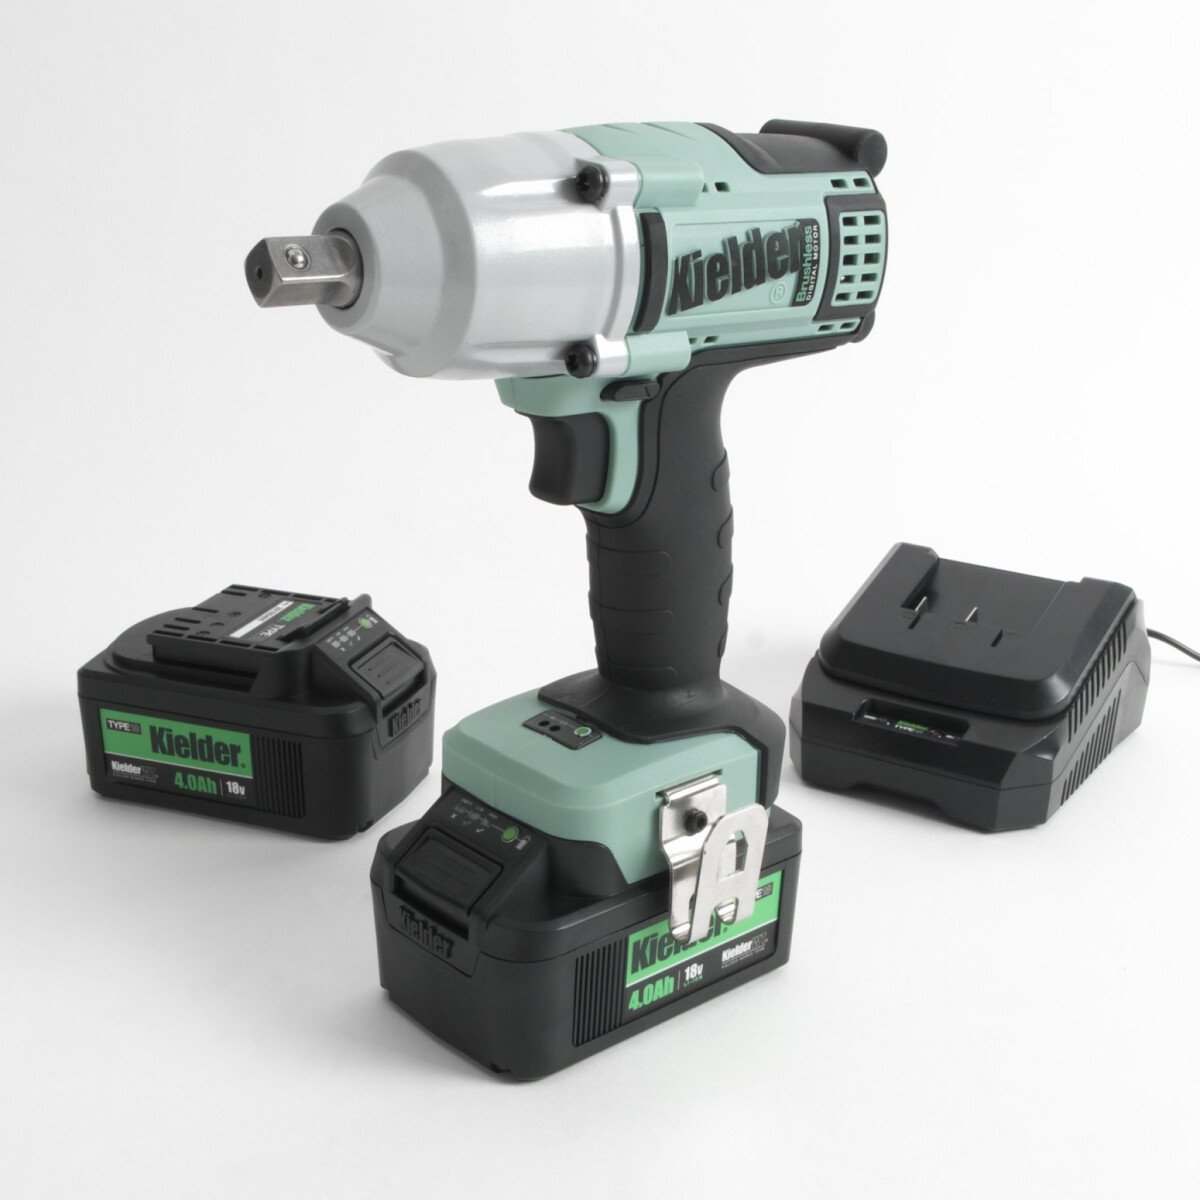 """Kielder KWT-012-51 18V 1/2"""" 700NM Brushless Impact Wrench with 2 x 4.0Ah Batteries in Stackable Carry Case."""